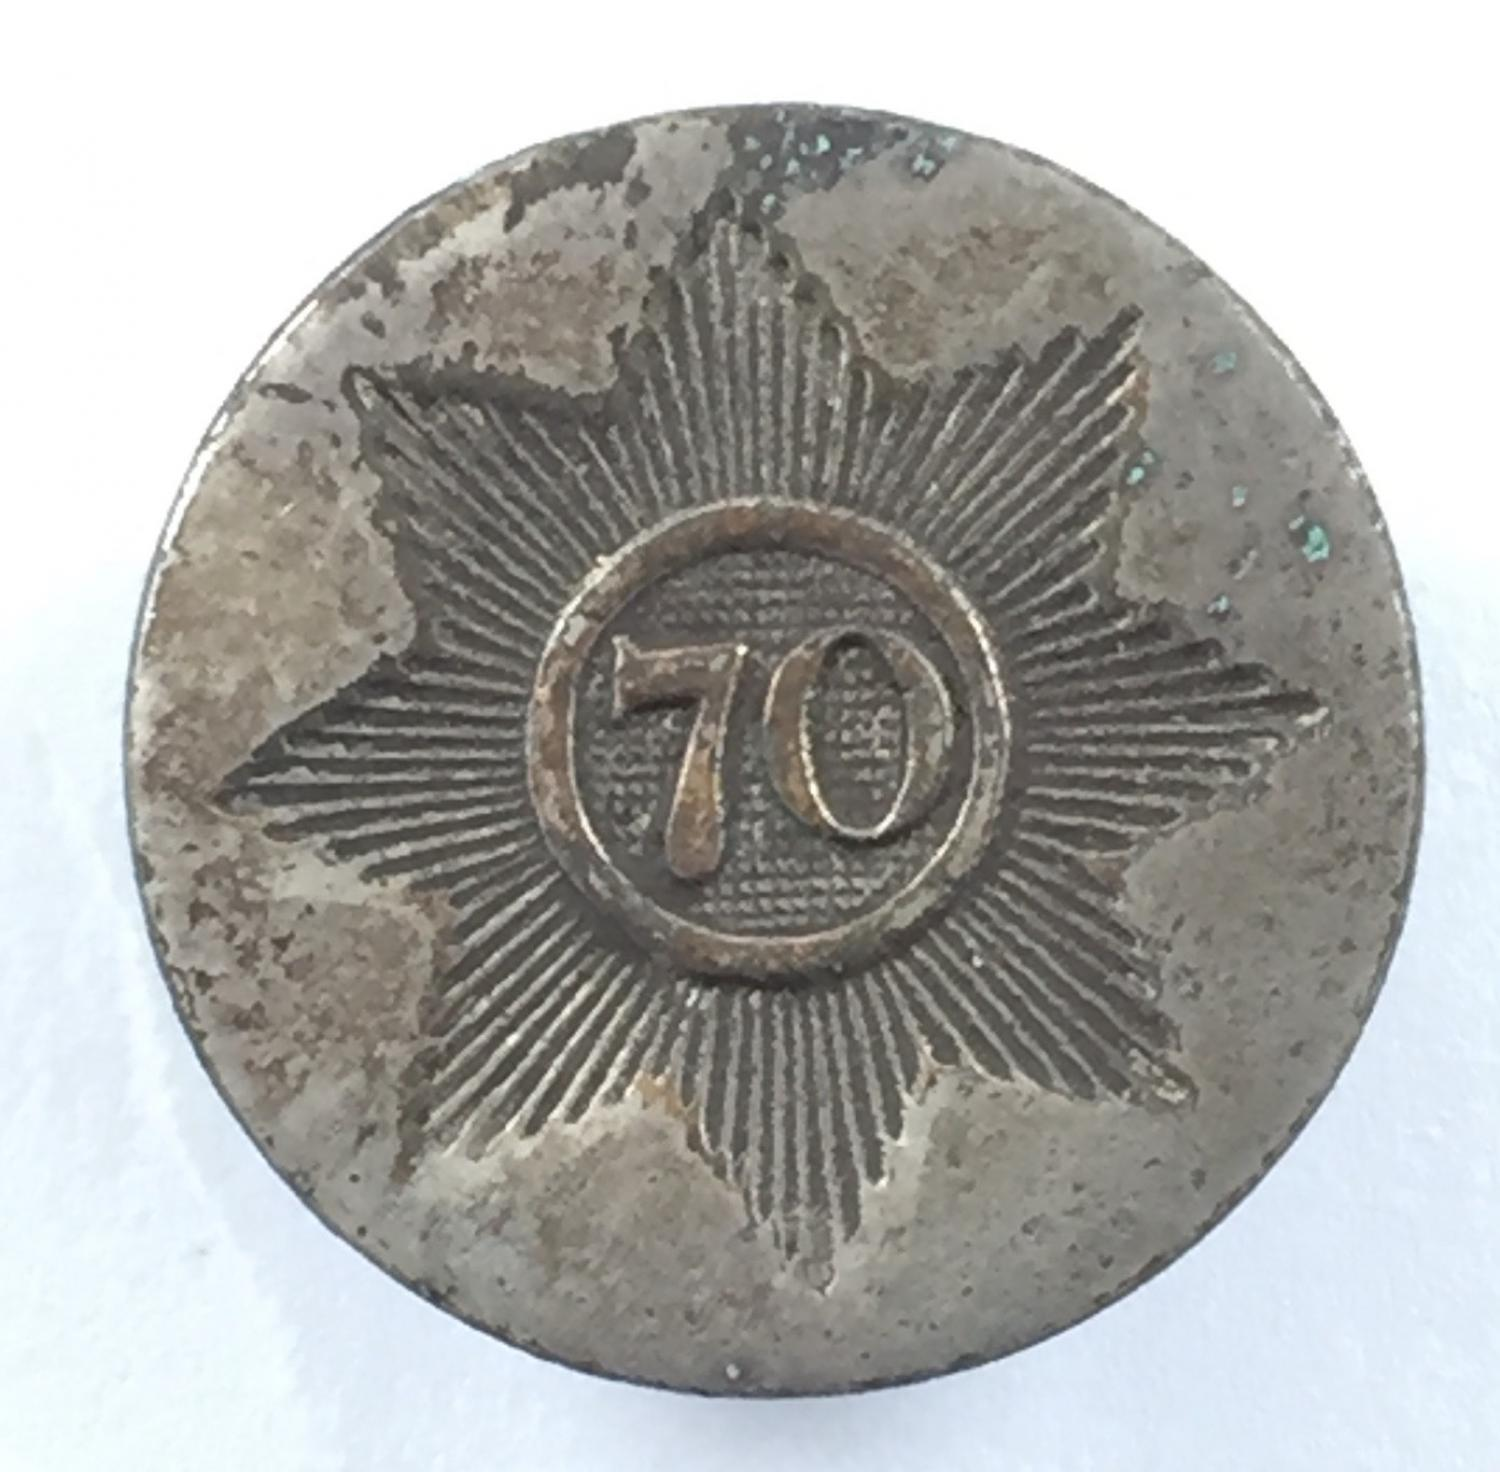 70th Foot George III coatee button